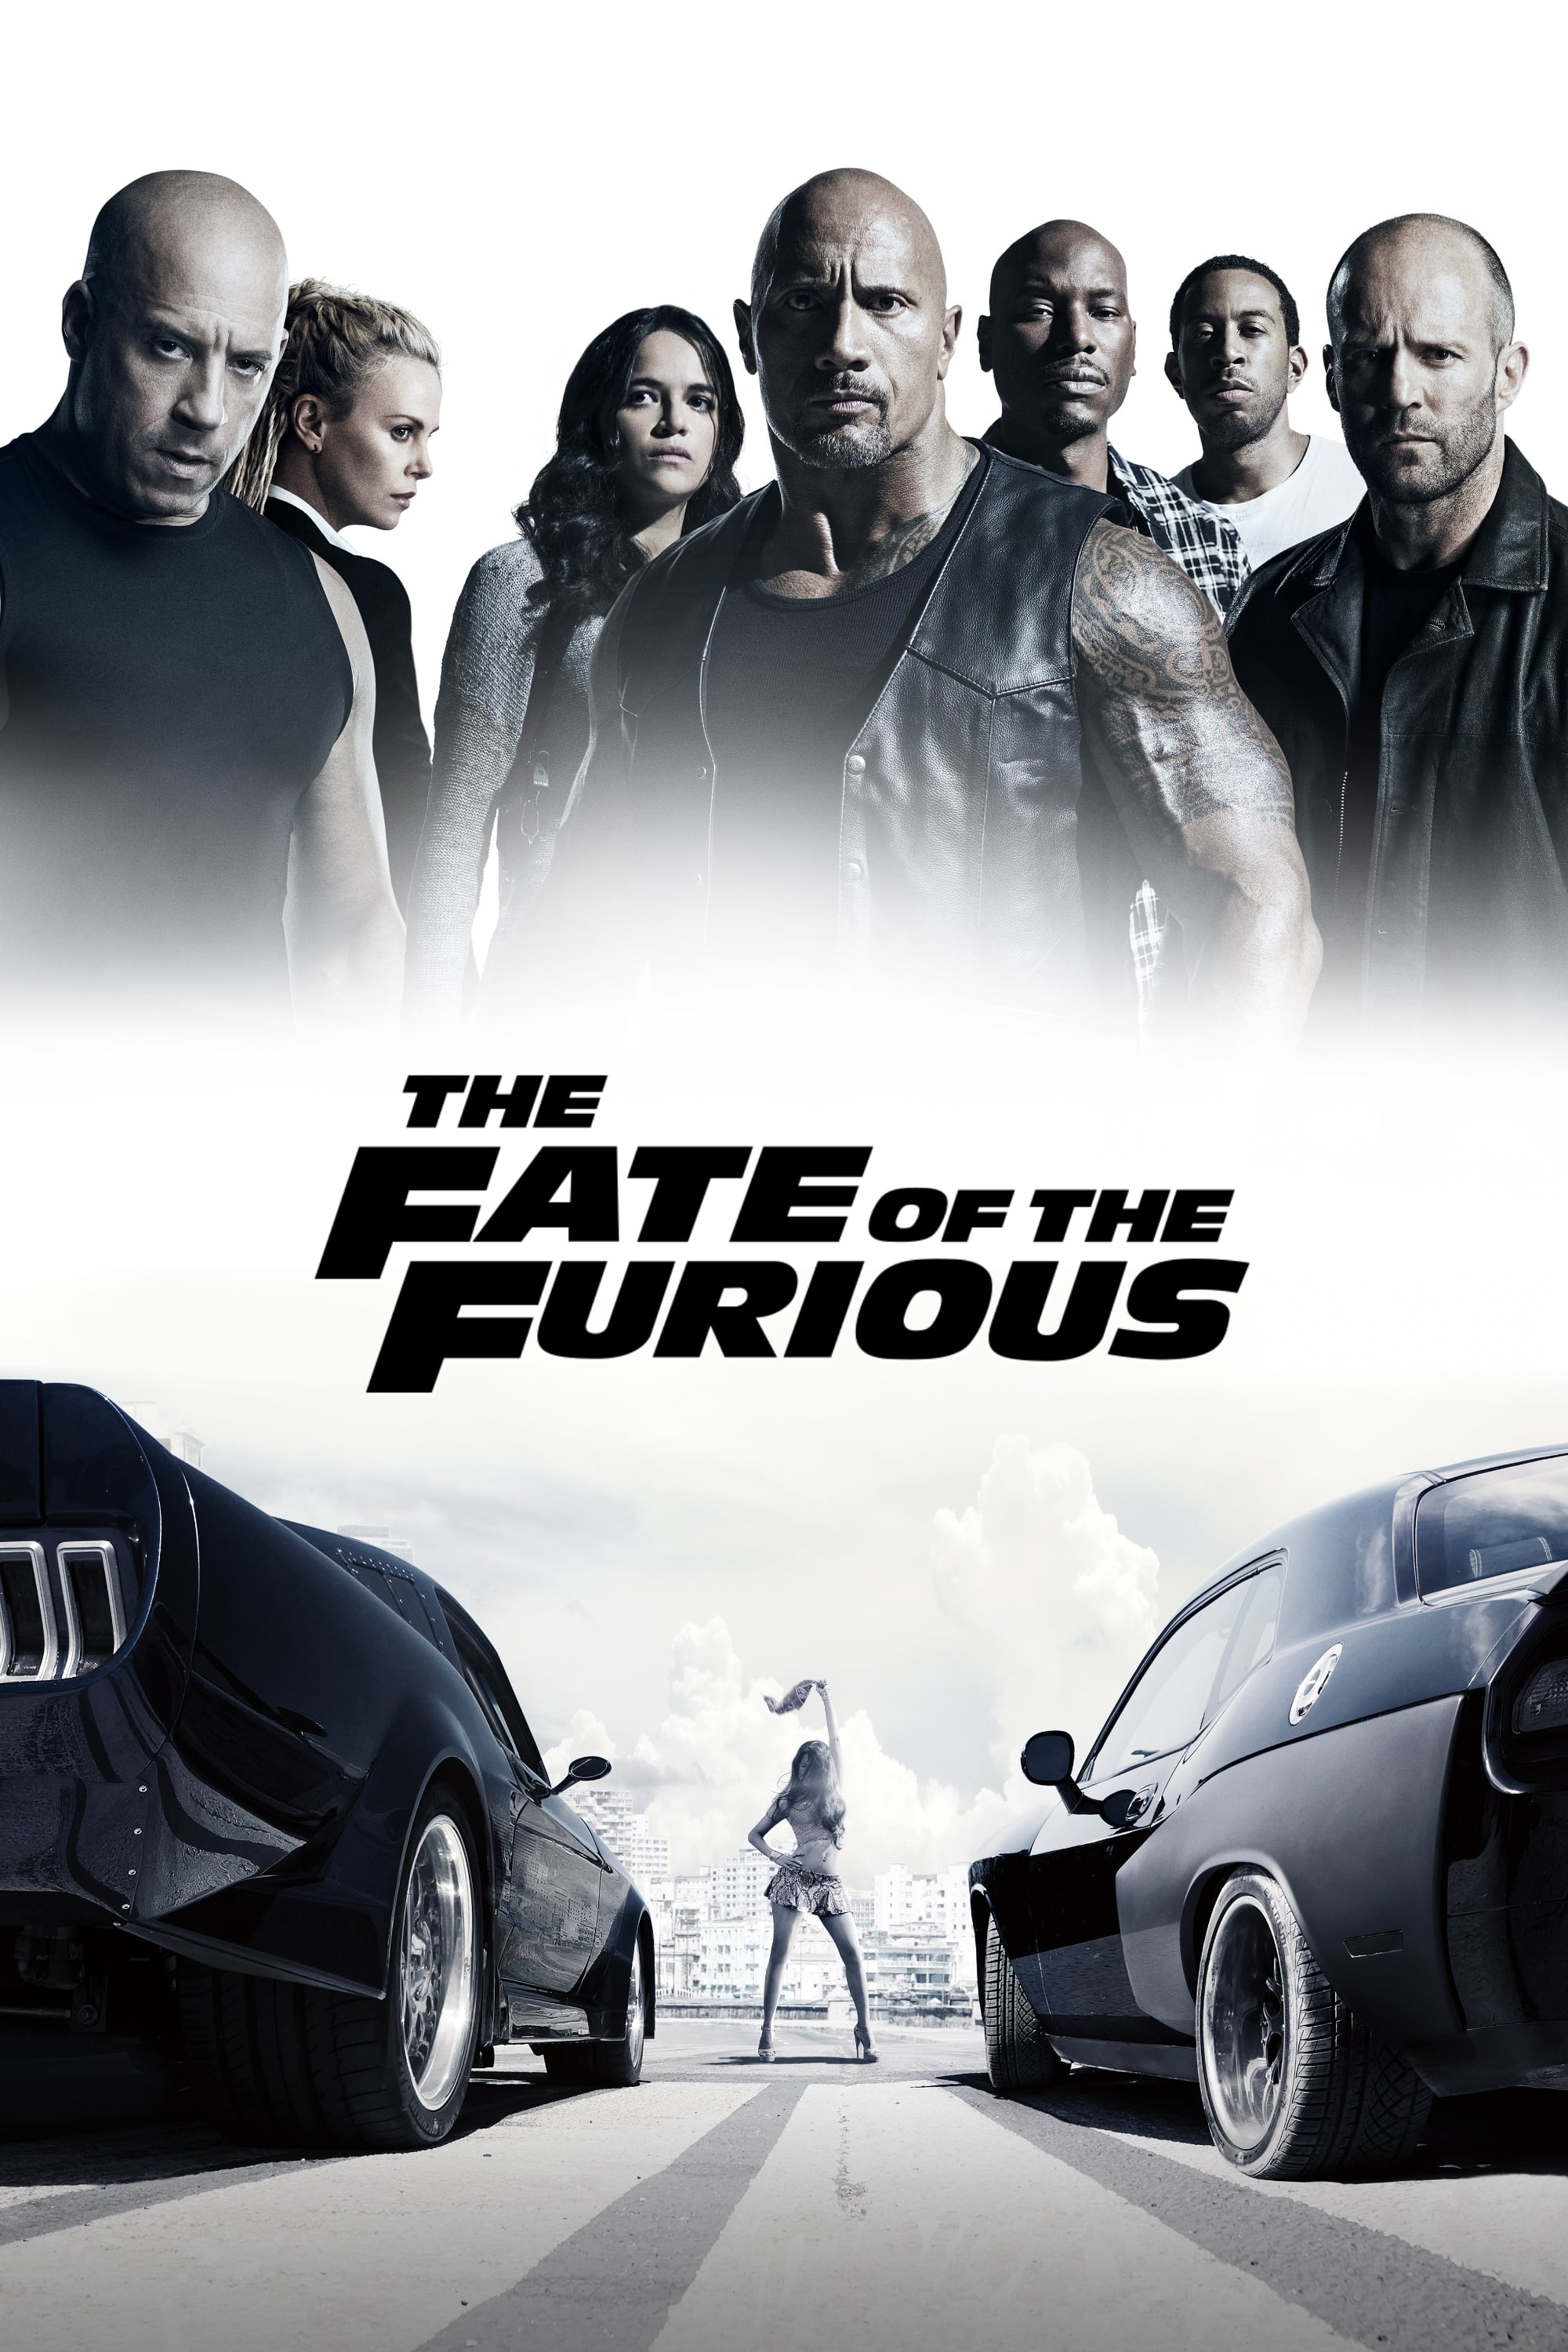 image for The Fate of the Furious